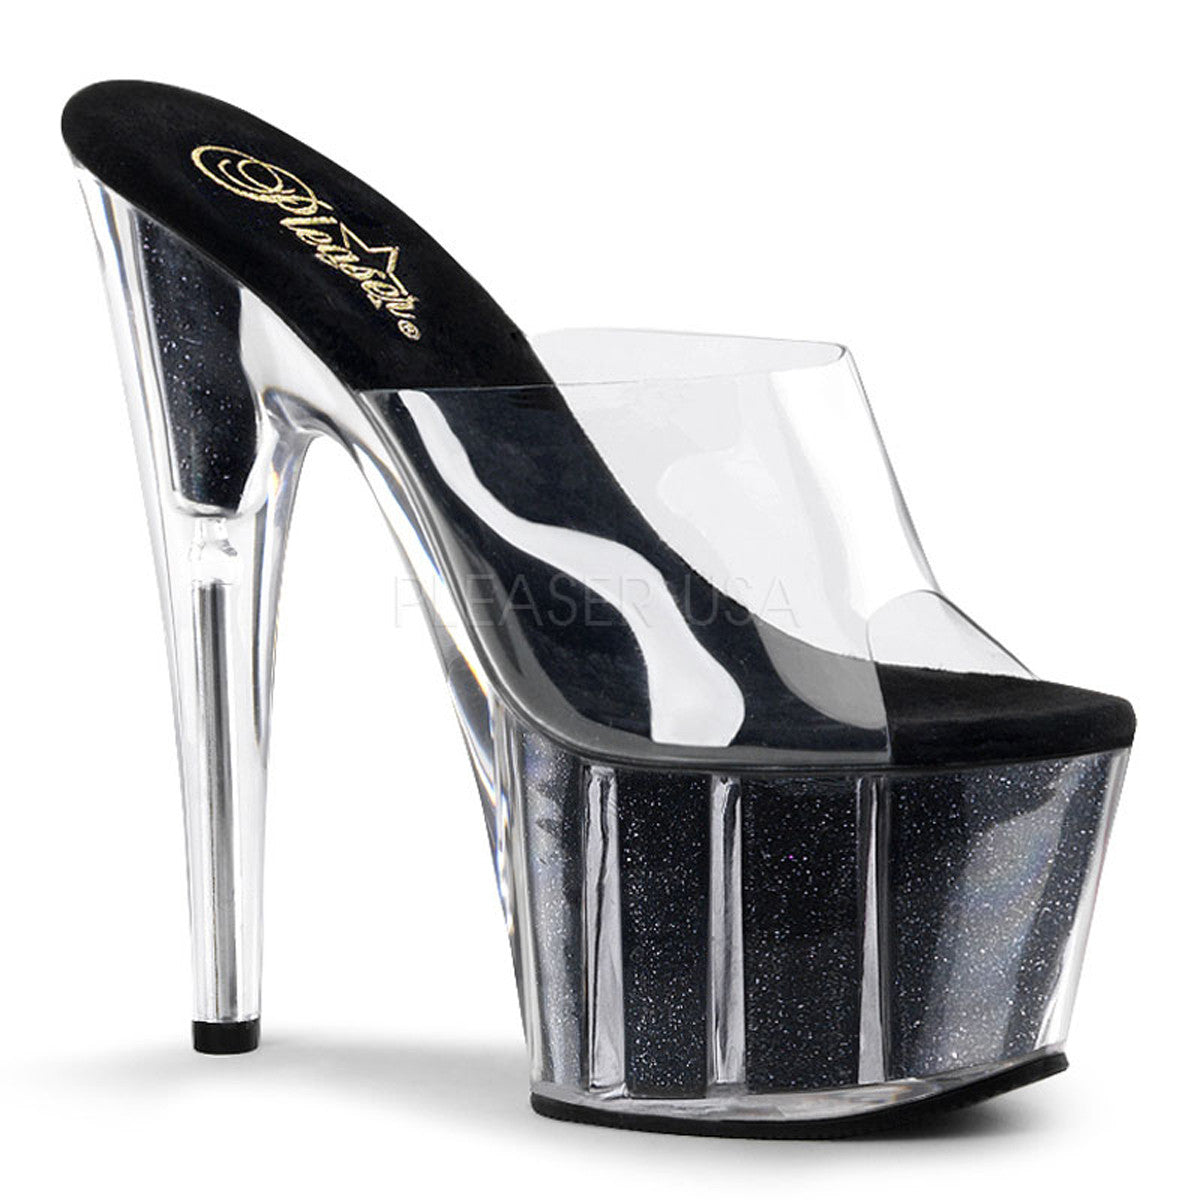 PLEASER ADORE-701G Clear-Black Glitter Platform Slides - Shoecup.com - 1